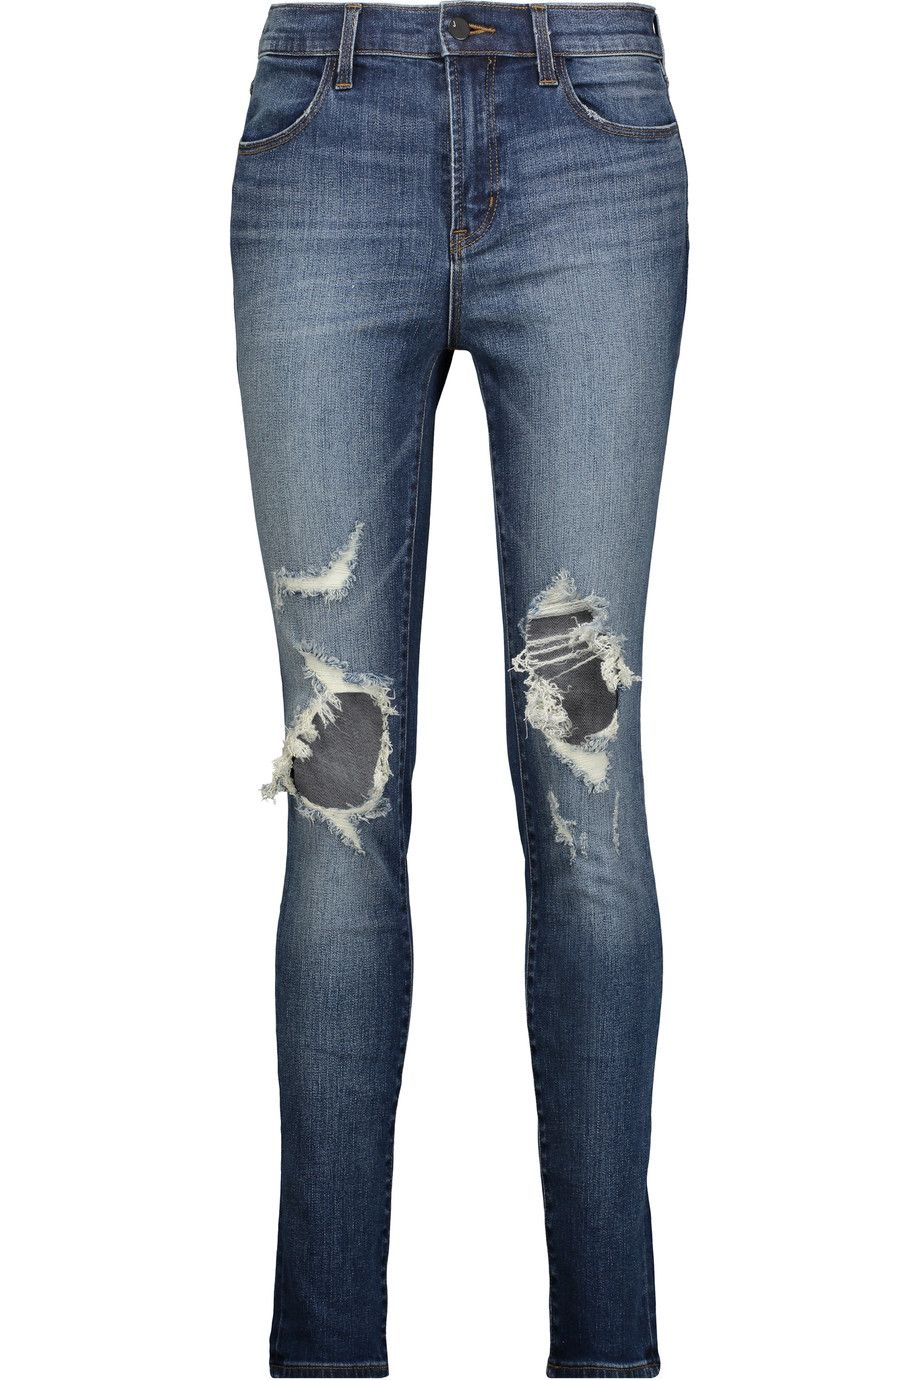 J brand maria distressed high rise skinny jeans